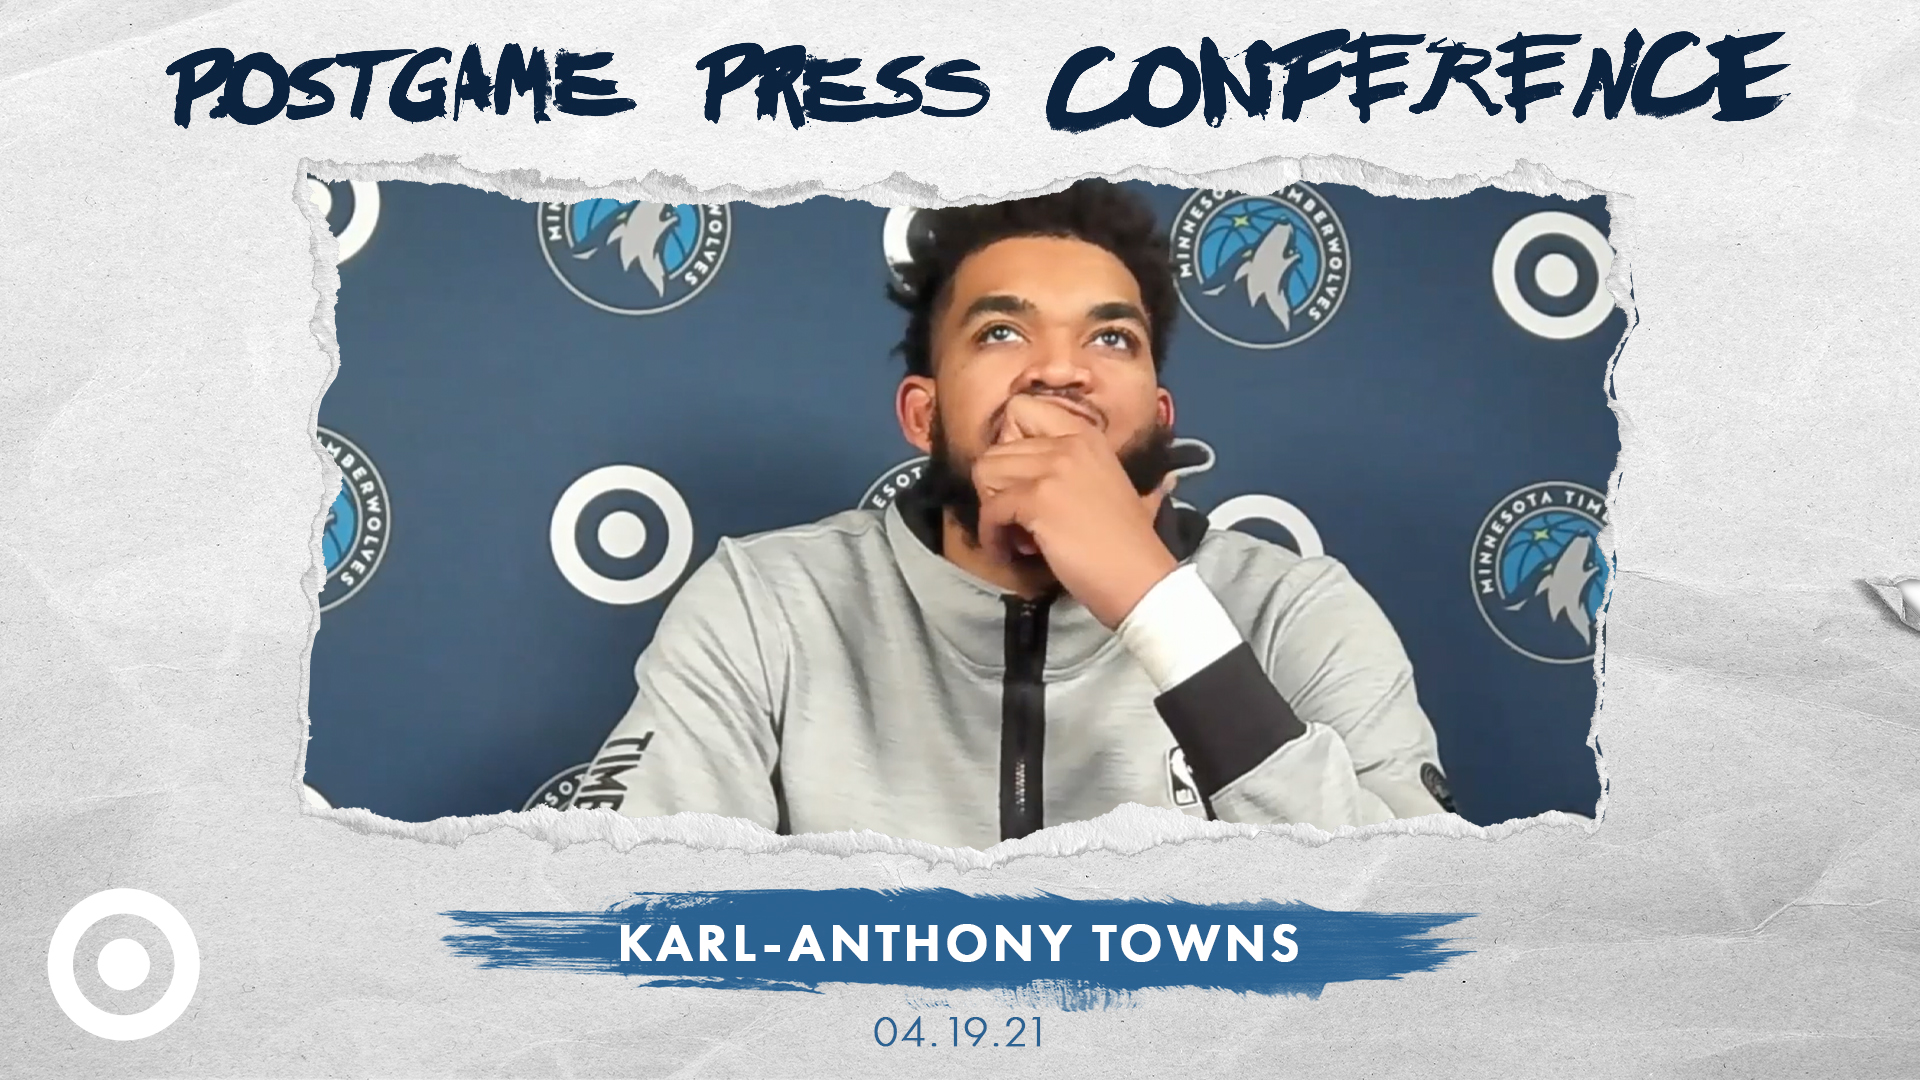 Karl-Anthony Towns Postgame Press Conference - April 18, 2021